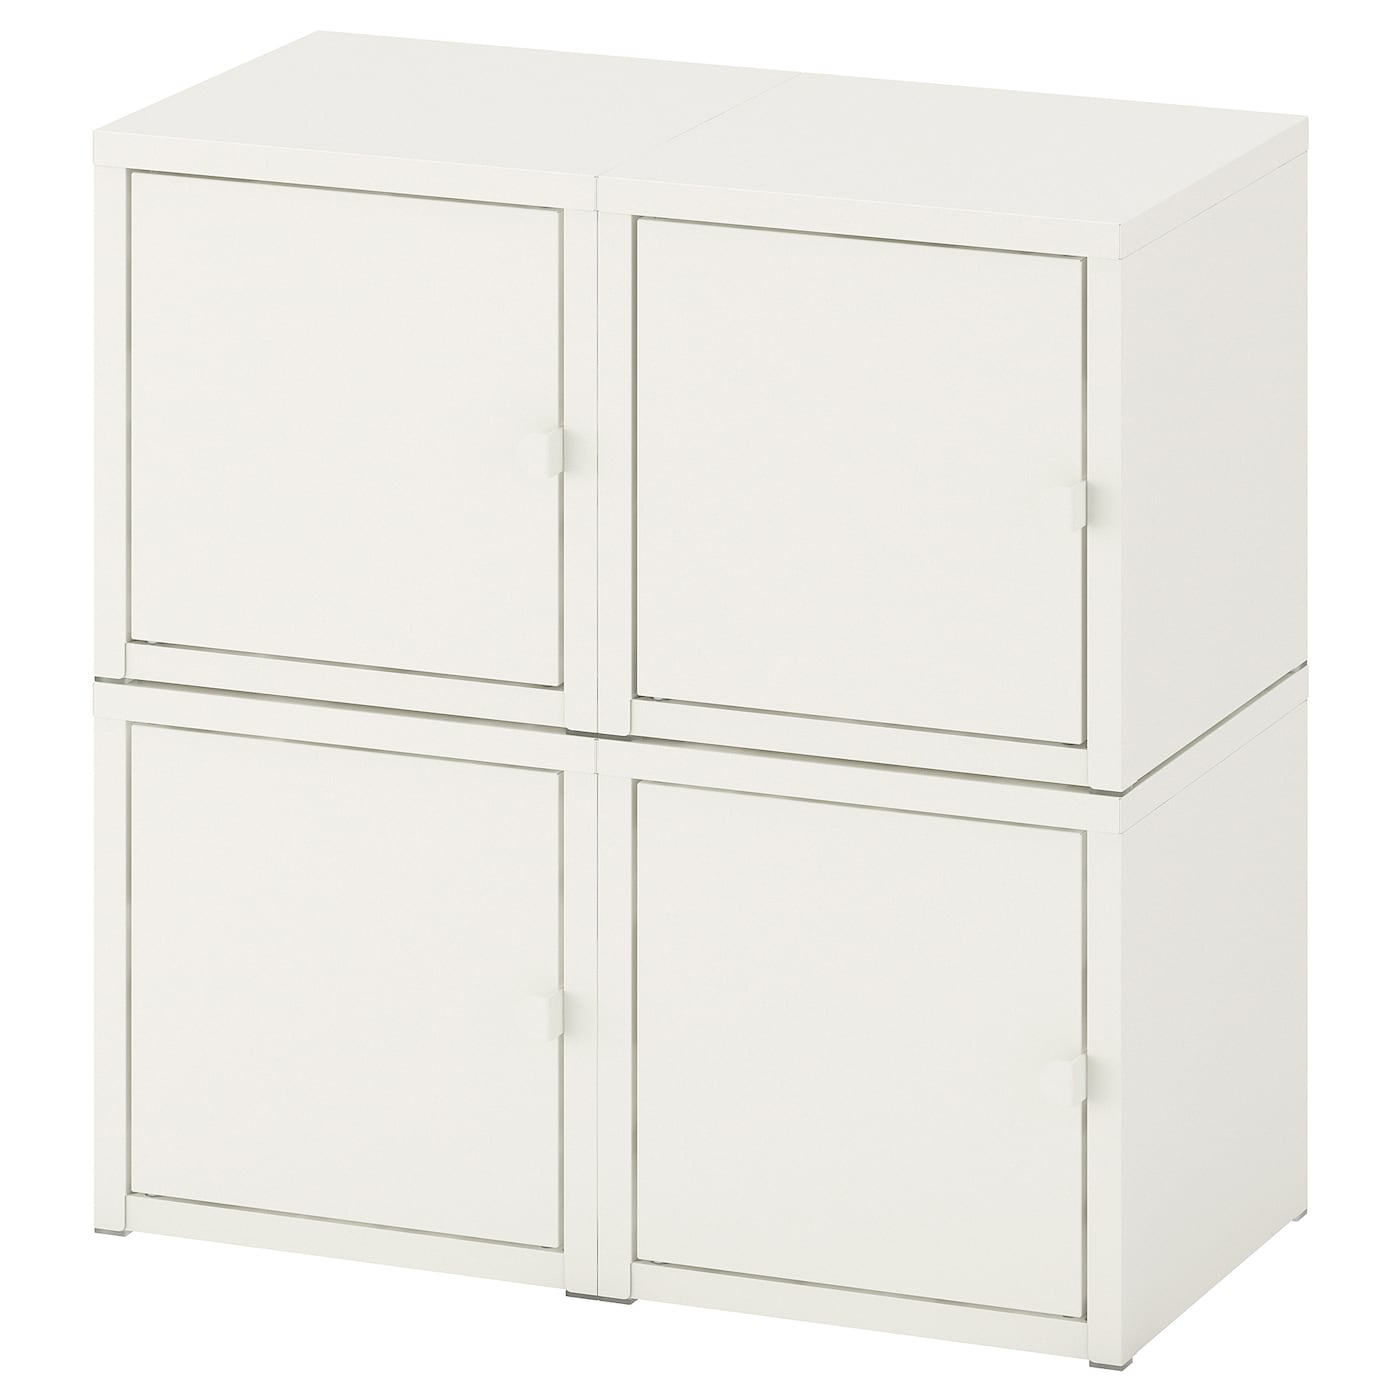 IKEA LIXHULT wall-mounted cabinet combination